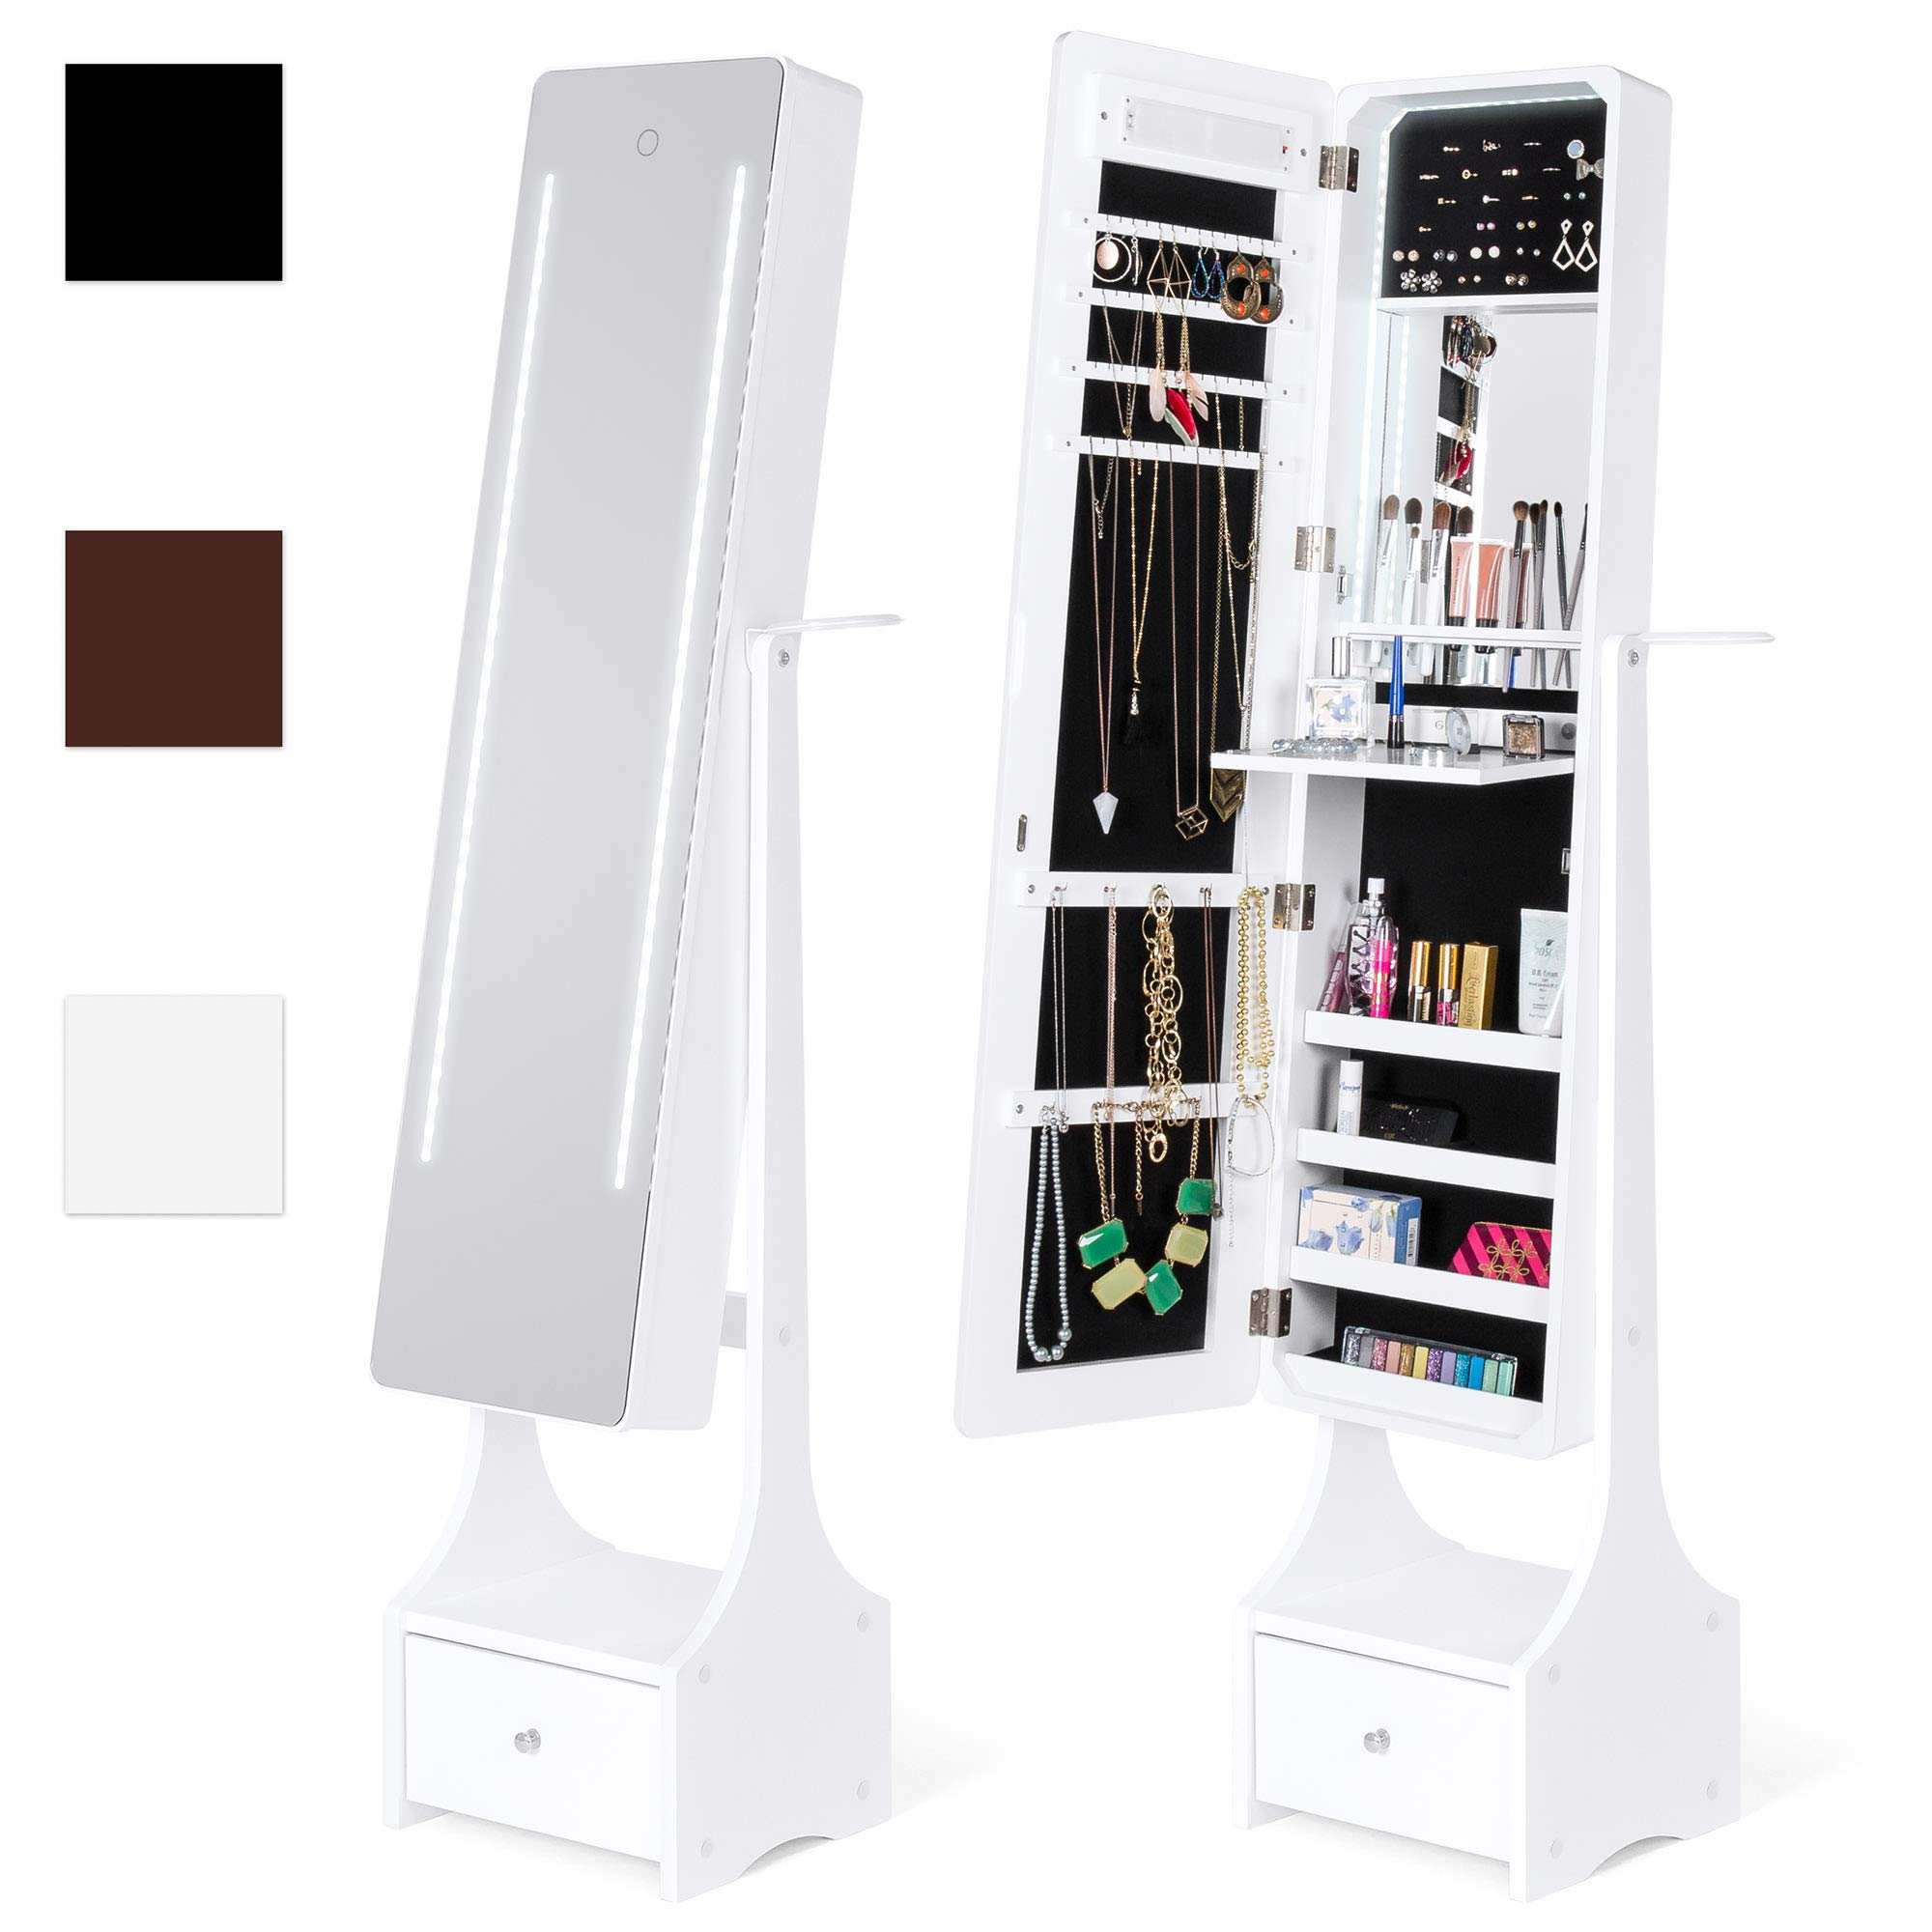 Best Choice Products Full Length Standing LED Mirrored Jewelry Makeup Storage Cabinet Armoire with Interior & Exterior Lights, Touchscreen, Shelf, Velvet Lining, 4 Compartments, Drawer, White by Best Choice Products